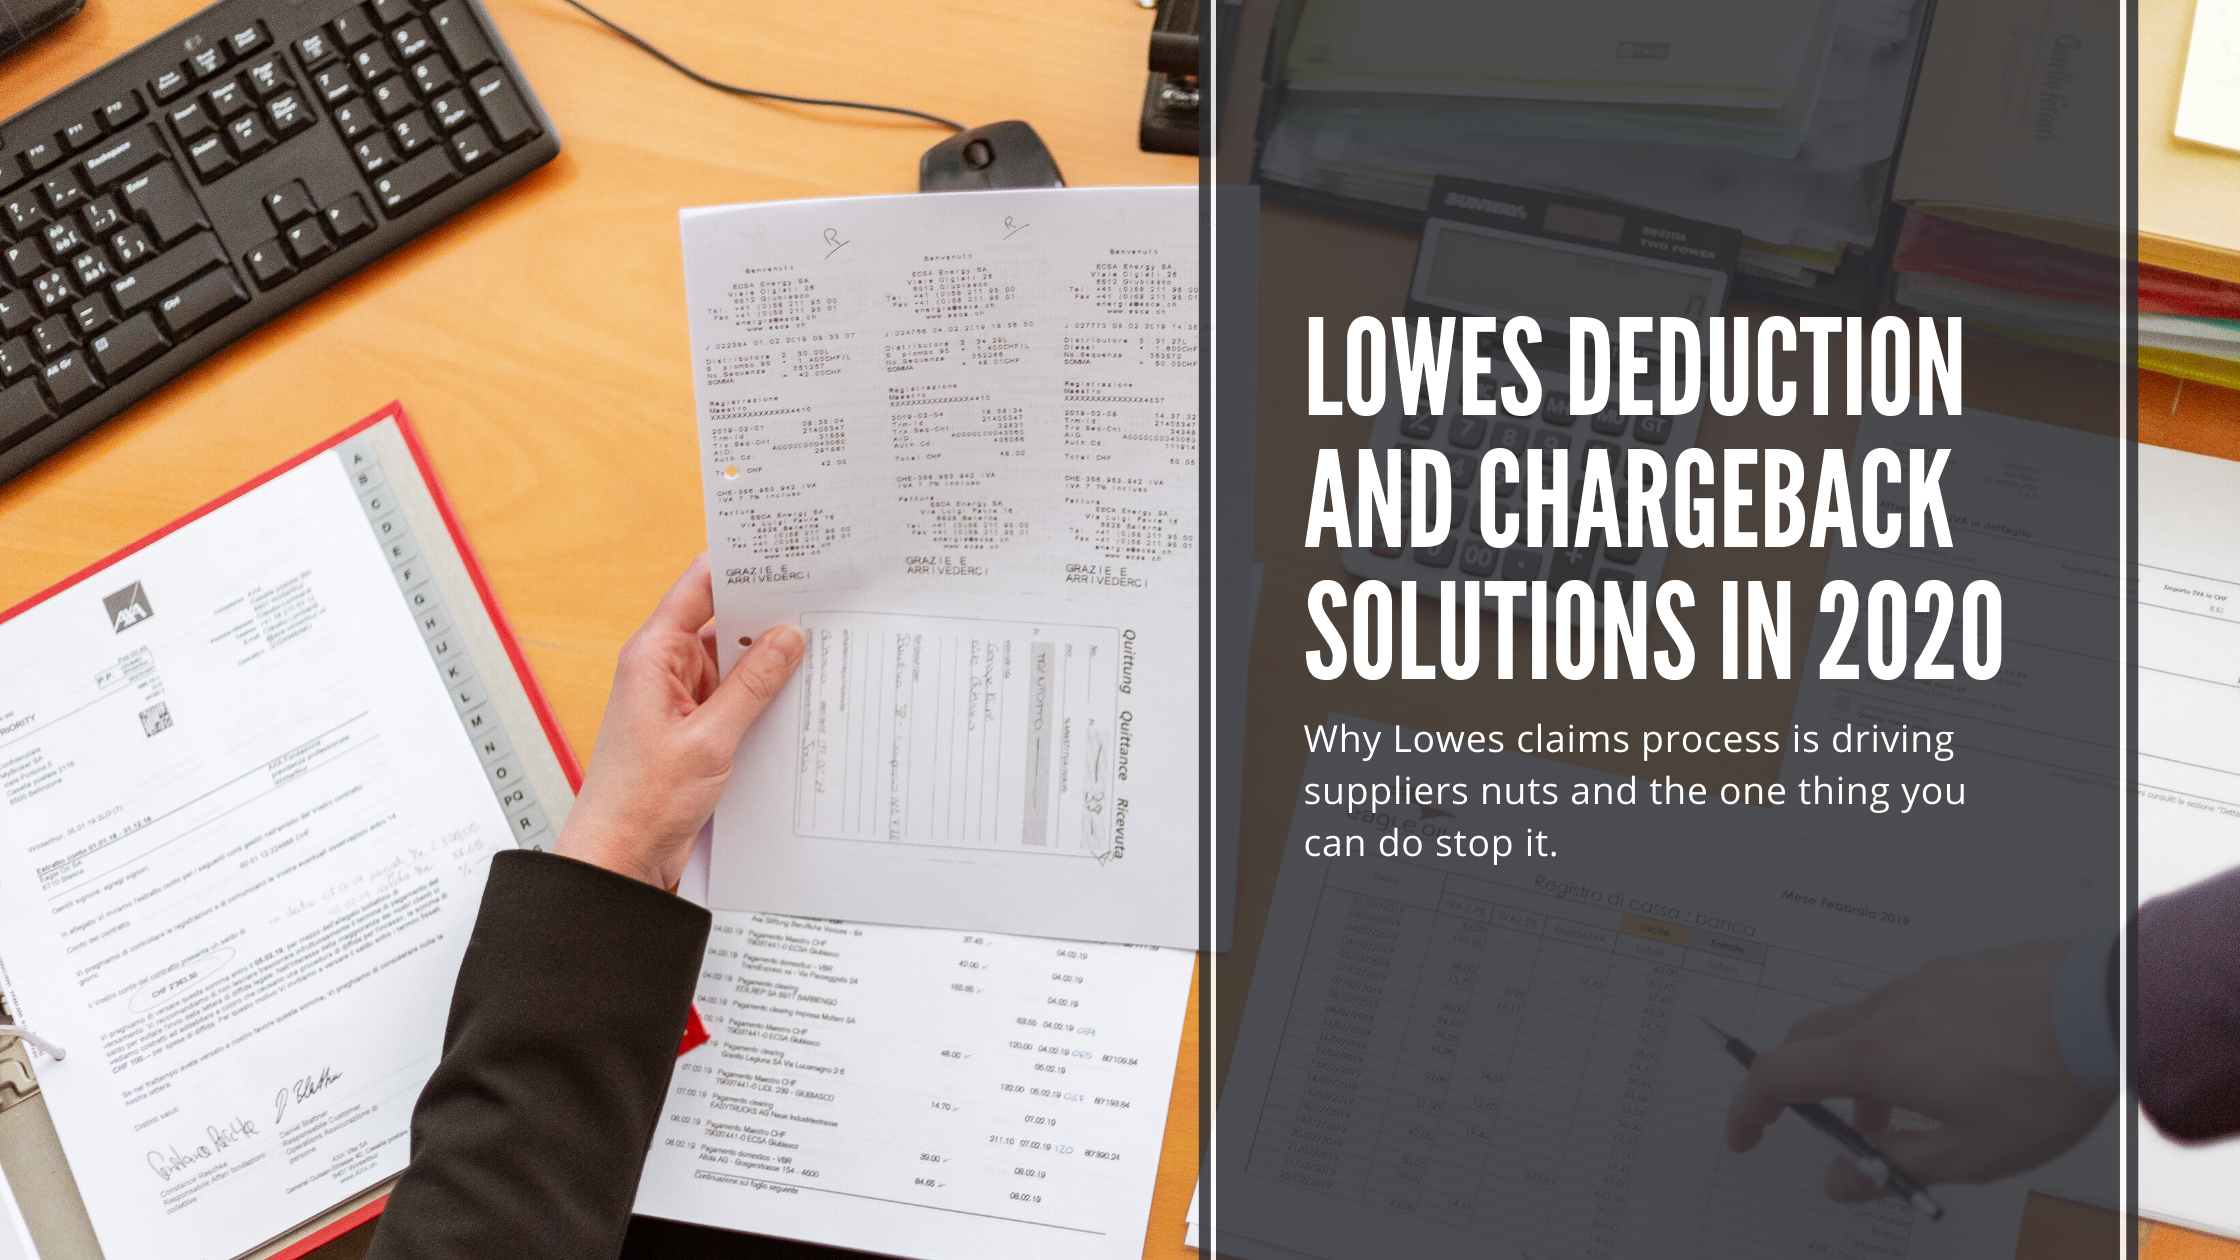 Lowes Deduction and Chargeback Solutions in 2020